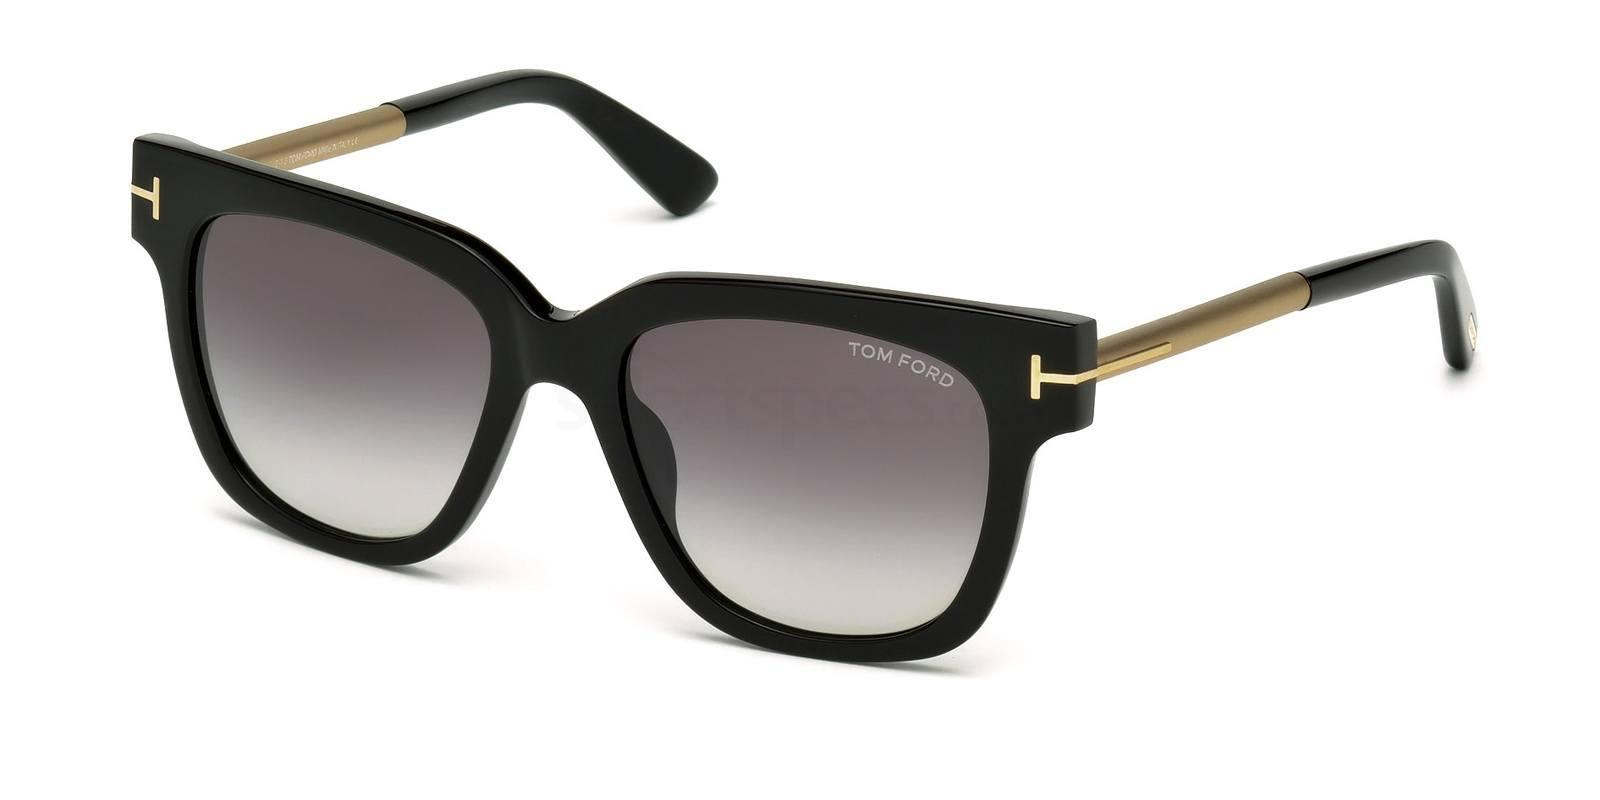 01B FT0436 Sunglasses, Tom Ford